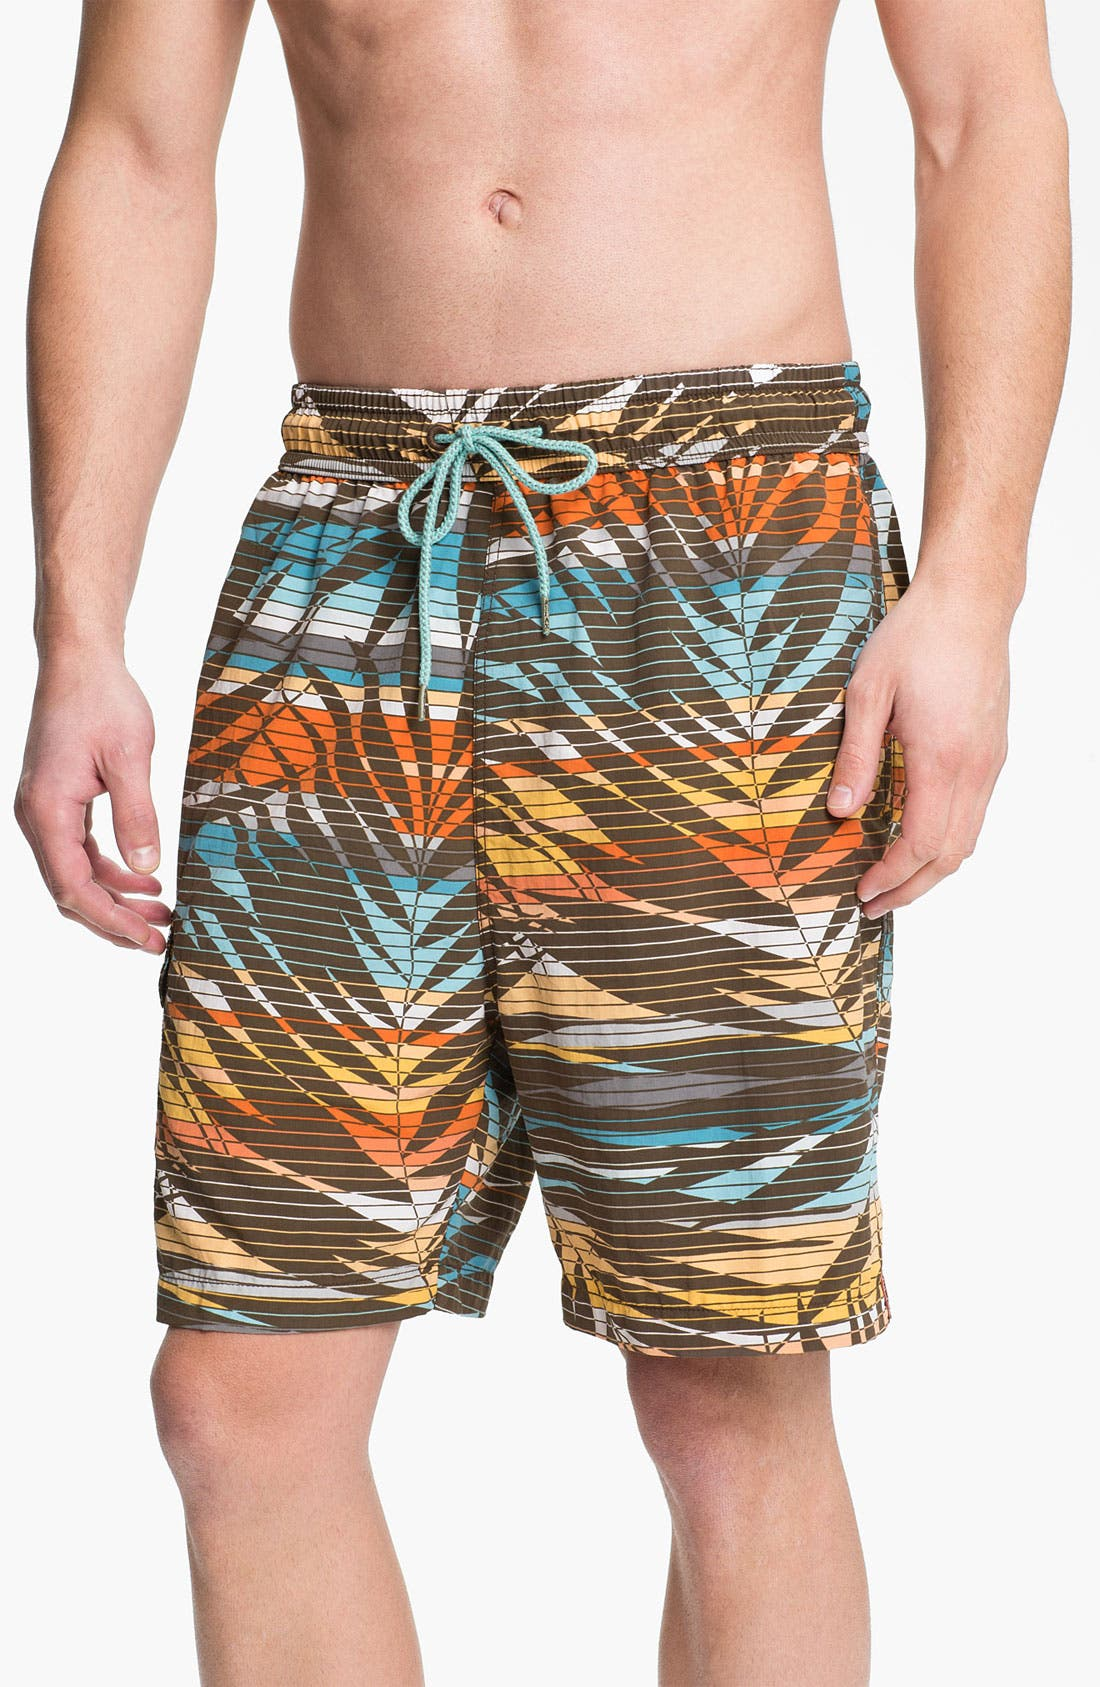 Alternate Image 1 Selected - Tommy Bahama 'Fern Baby Fern' Swim Trunks (Big & Tall) (Online Only)